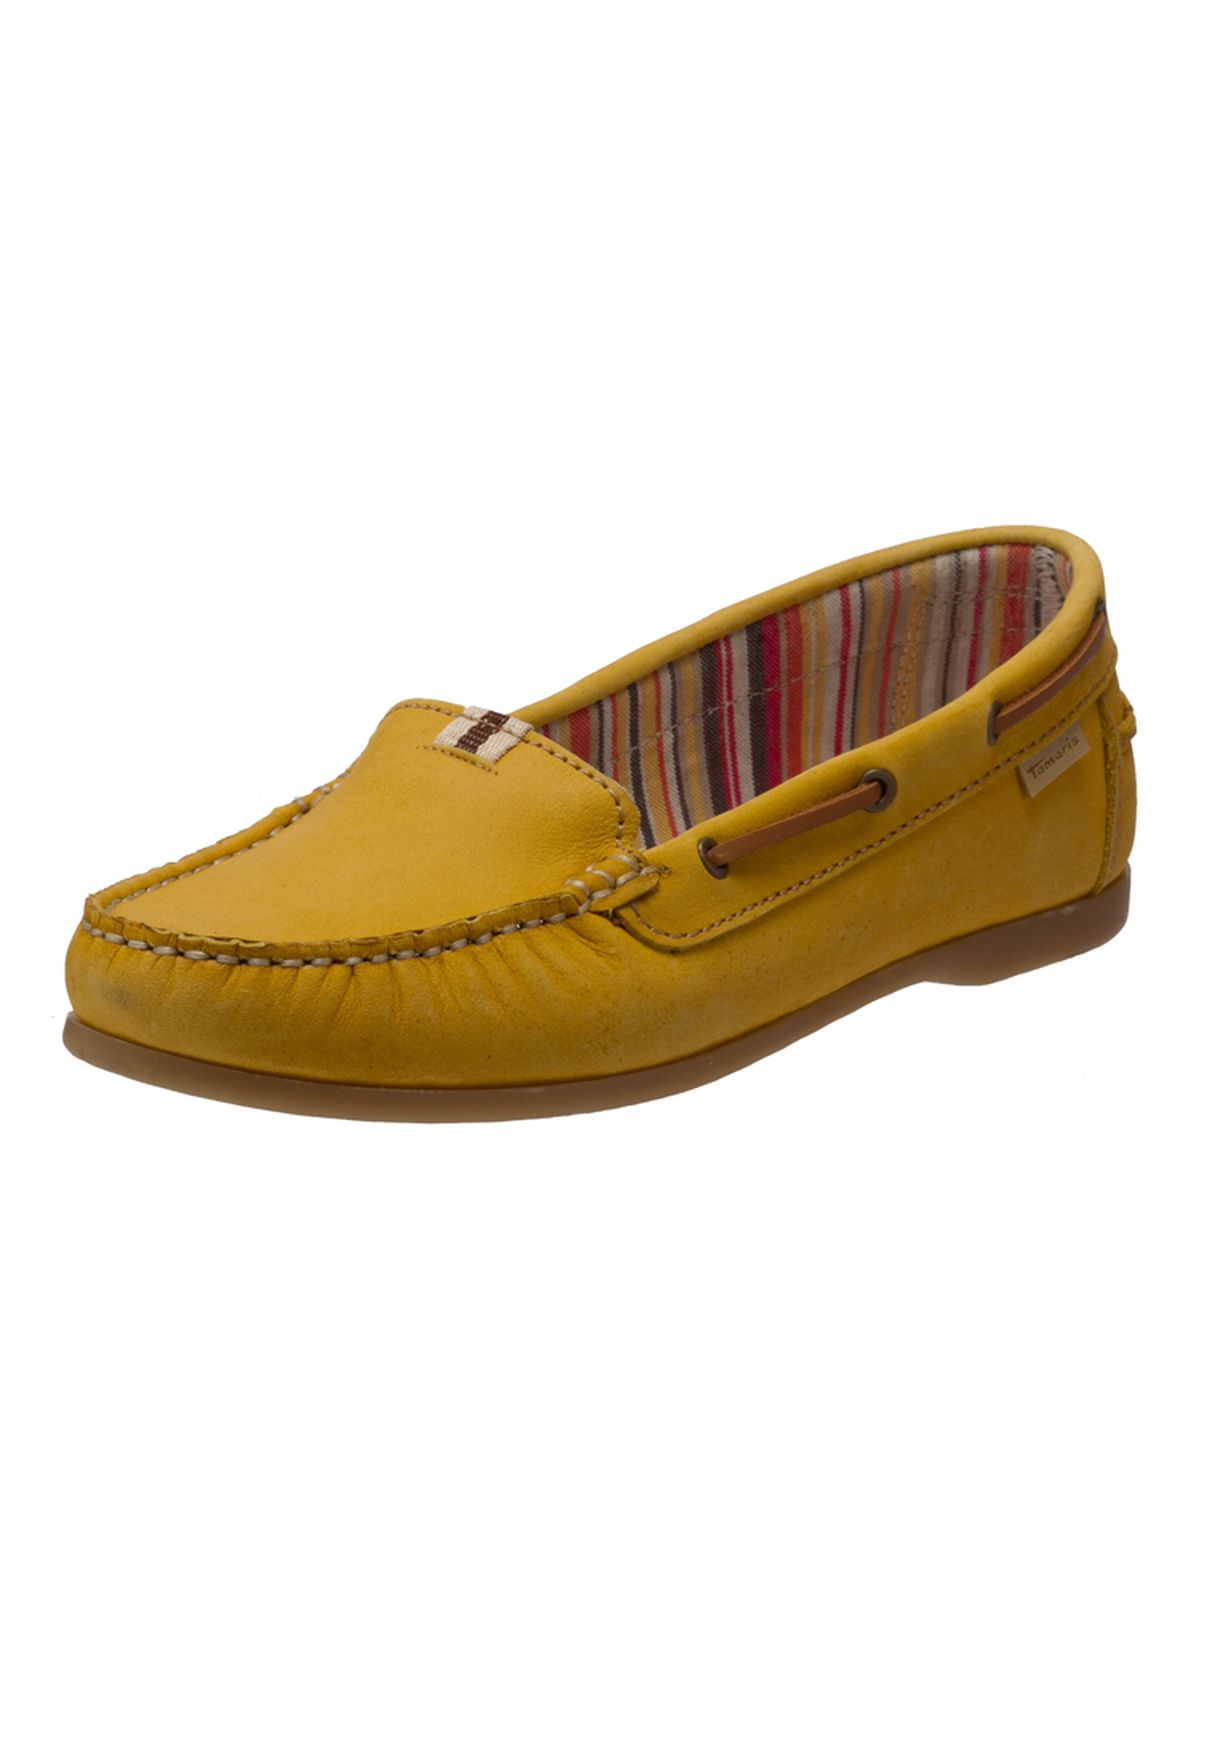 Shop Tamaris yellow Leather Moccasin Shoes for Women in Saudi - TA144SH87XHG cbc61fea003c